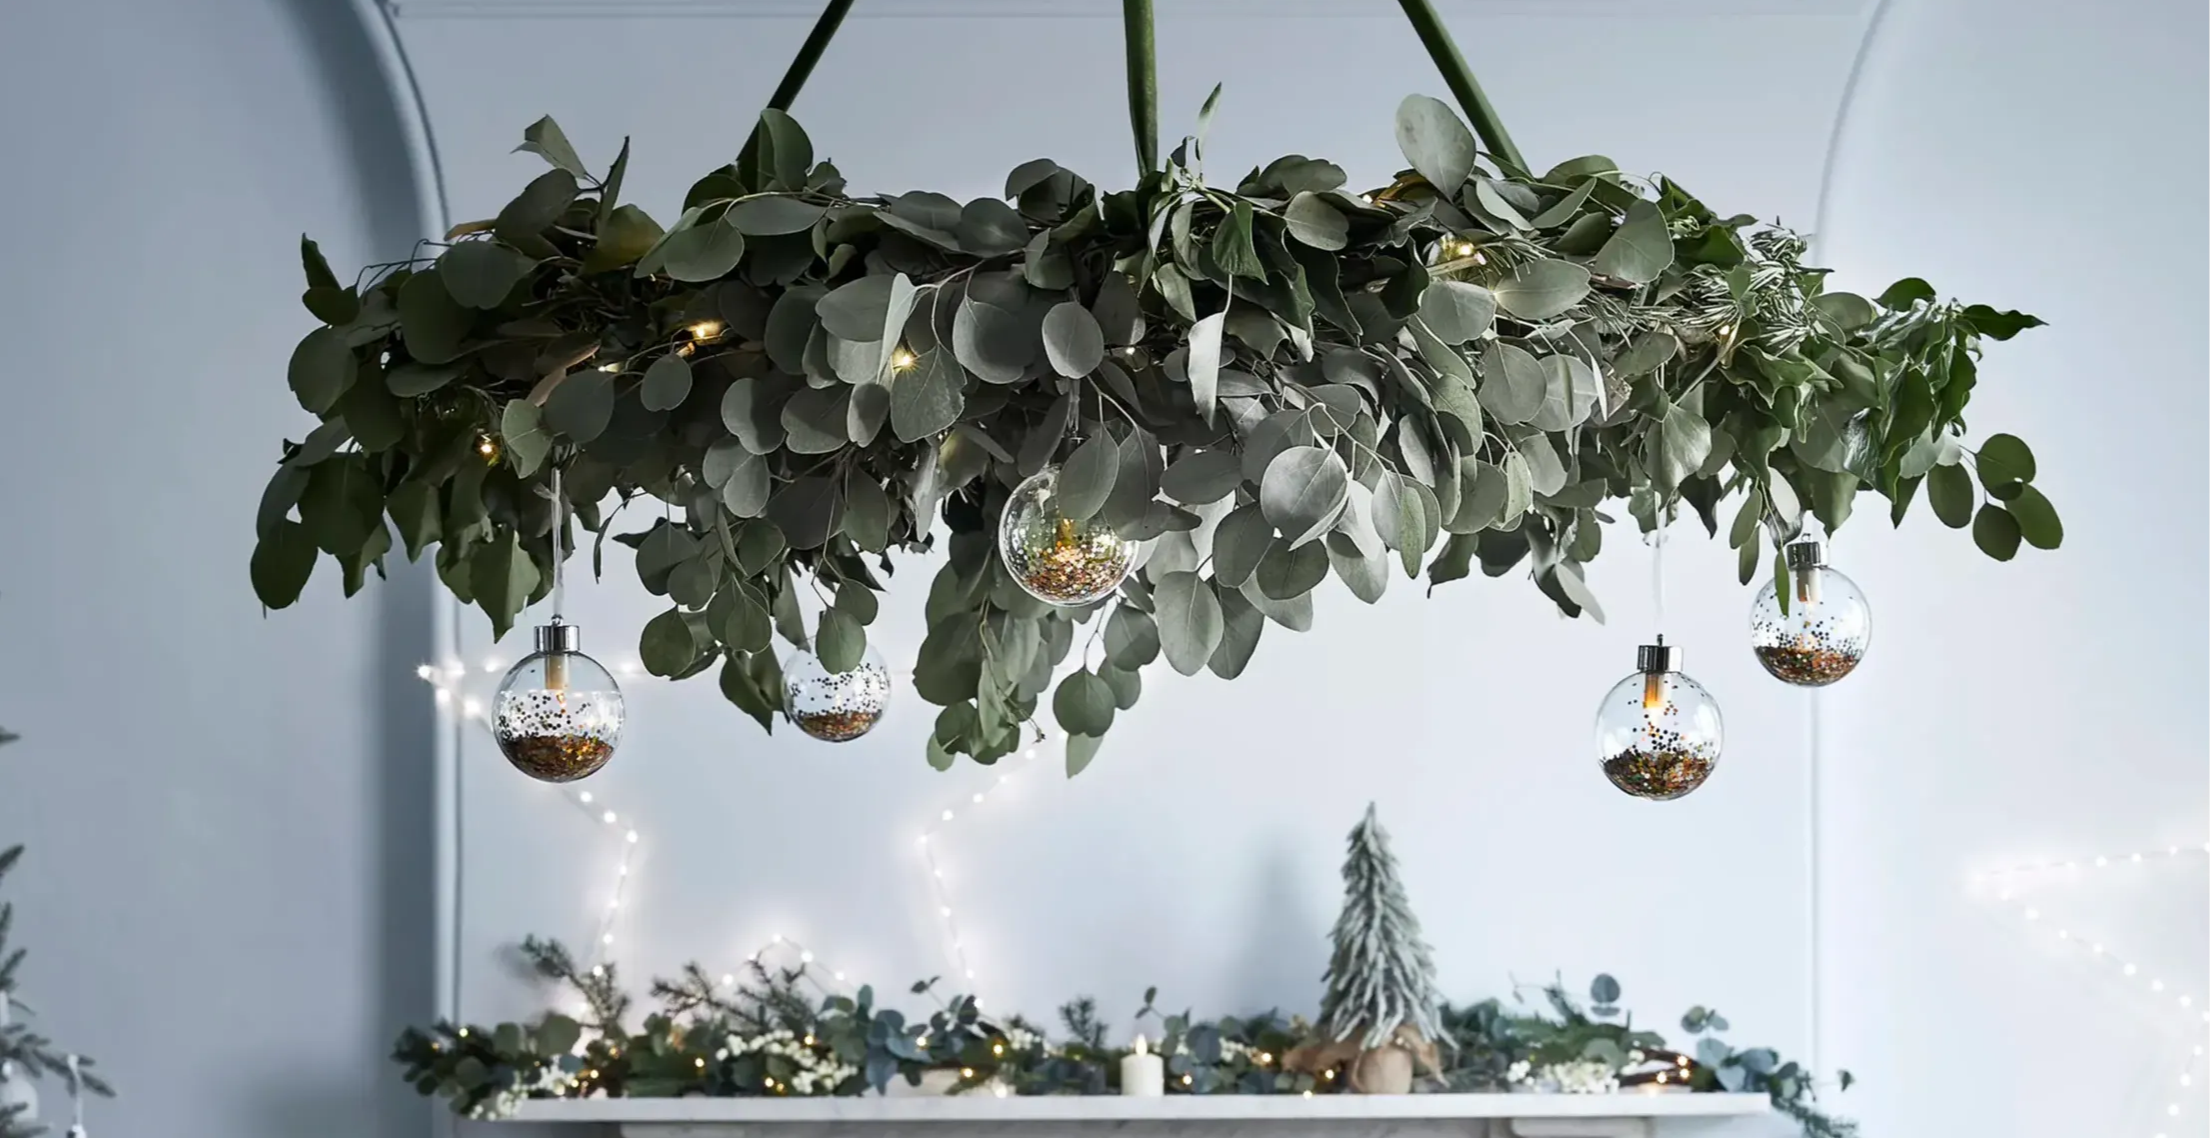 Close up image of foliage chandelier feature with mantel in the background featuring a festive garland, star light and mini tree